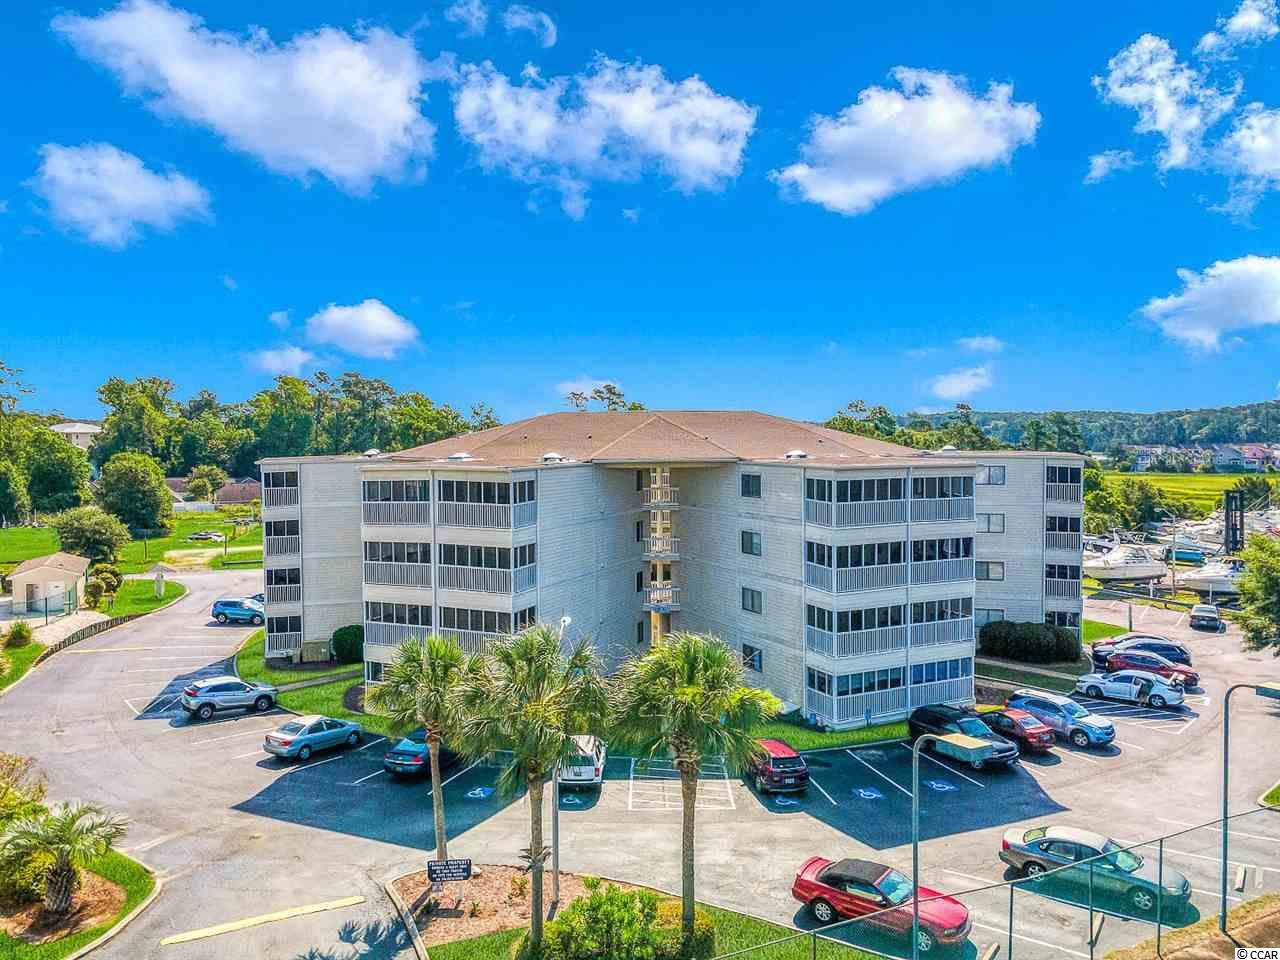 If you're looking for a condo in great shape in the heart of Little River for a steal of a price, you just found it. This updated condo sits in close proximity to the Marina and Waterway. Can't do stairs? No problem! This 4th floor unit has an elevator so no stairs are needed. Perfect for a rental property, second home, or even a primary residence. Very quiet community with a large pool and deck. This unit overlooks the pool and has a great view from the unit and the screened in porch. This property is priced to sell and won't last long, so schedule a showing today!